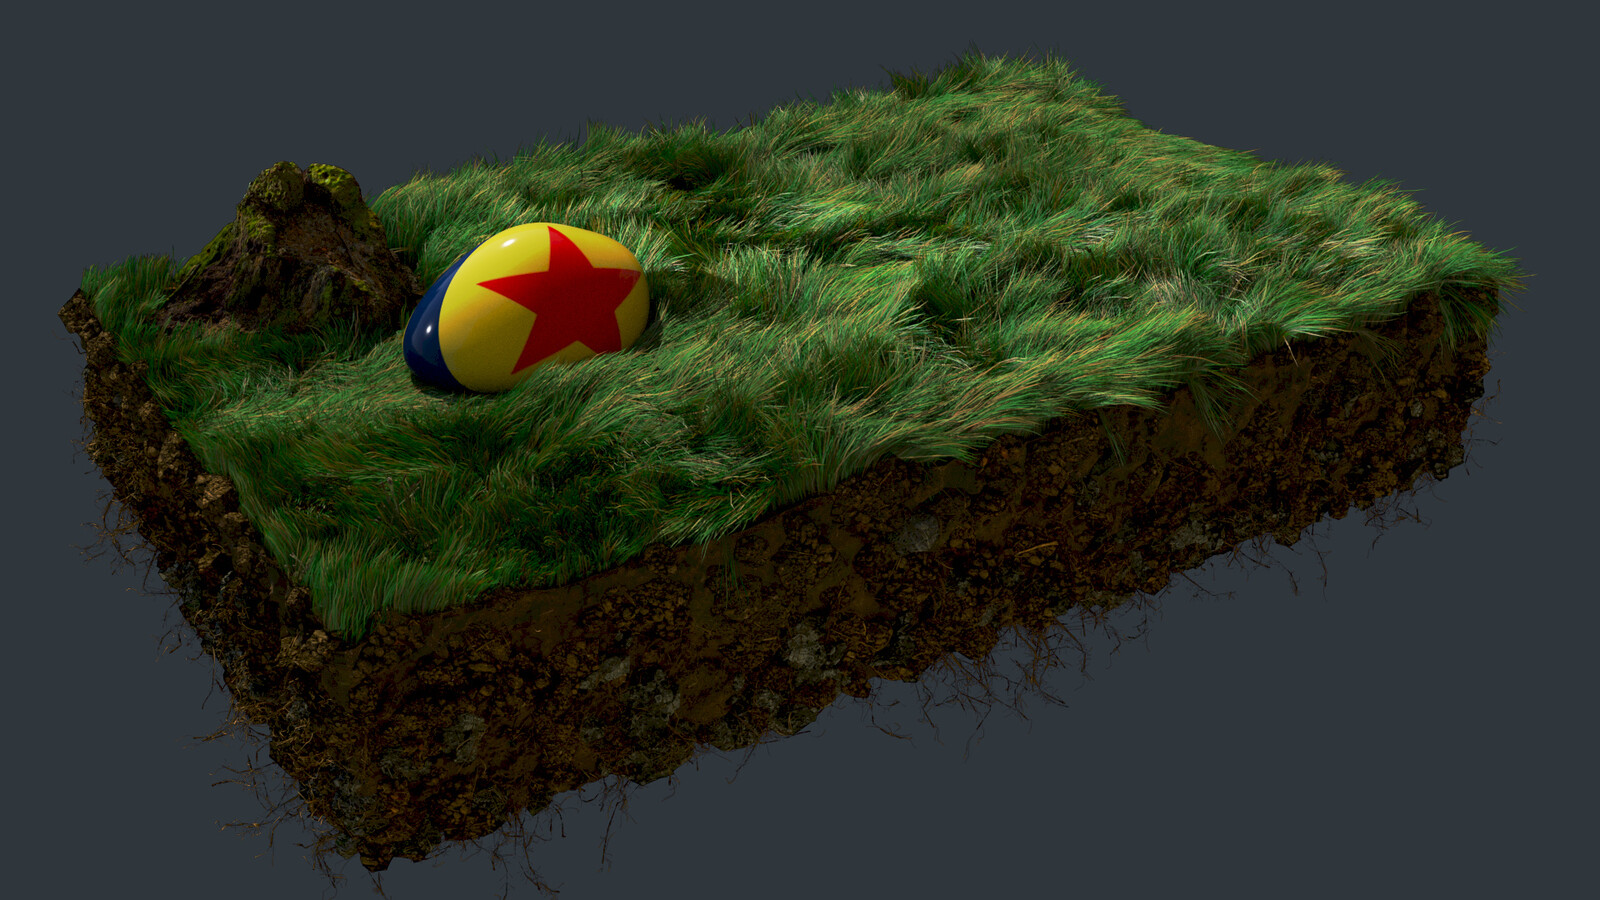 Grass & Ball (Vellum Houdini)